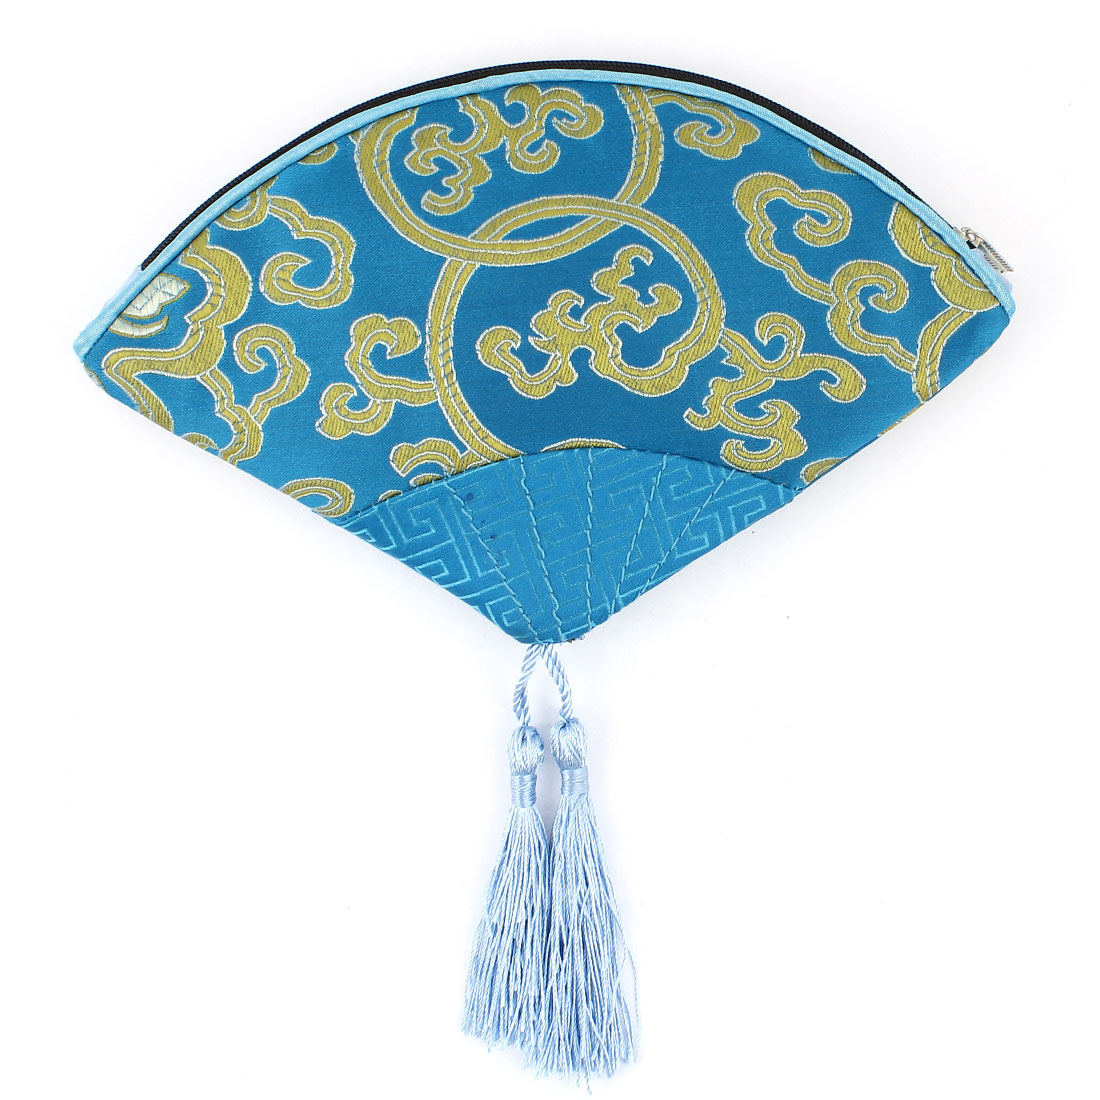 Women Fan Shaped Embroidery Floral Pattern Tassels Decor Zipper Closure Cash Coin Key Purse Blue